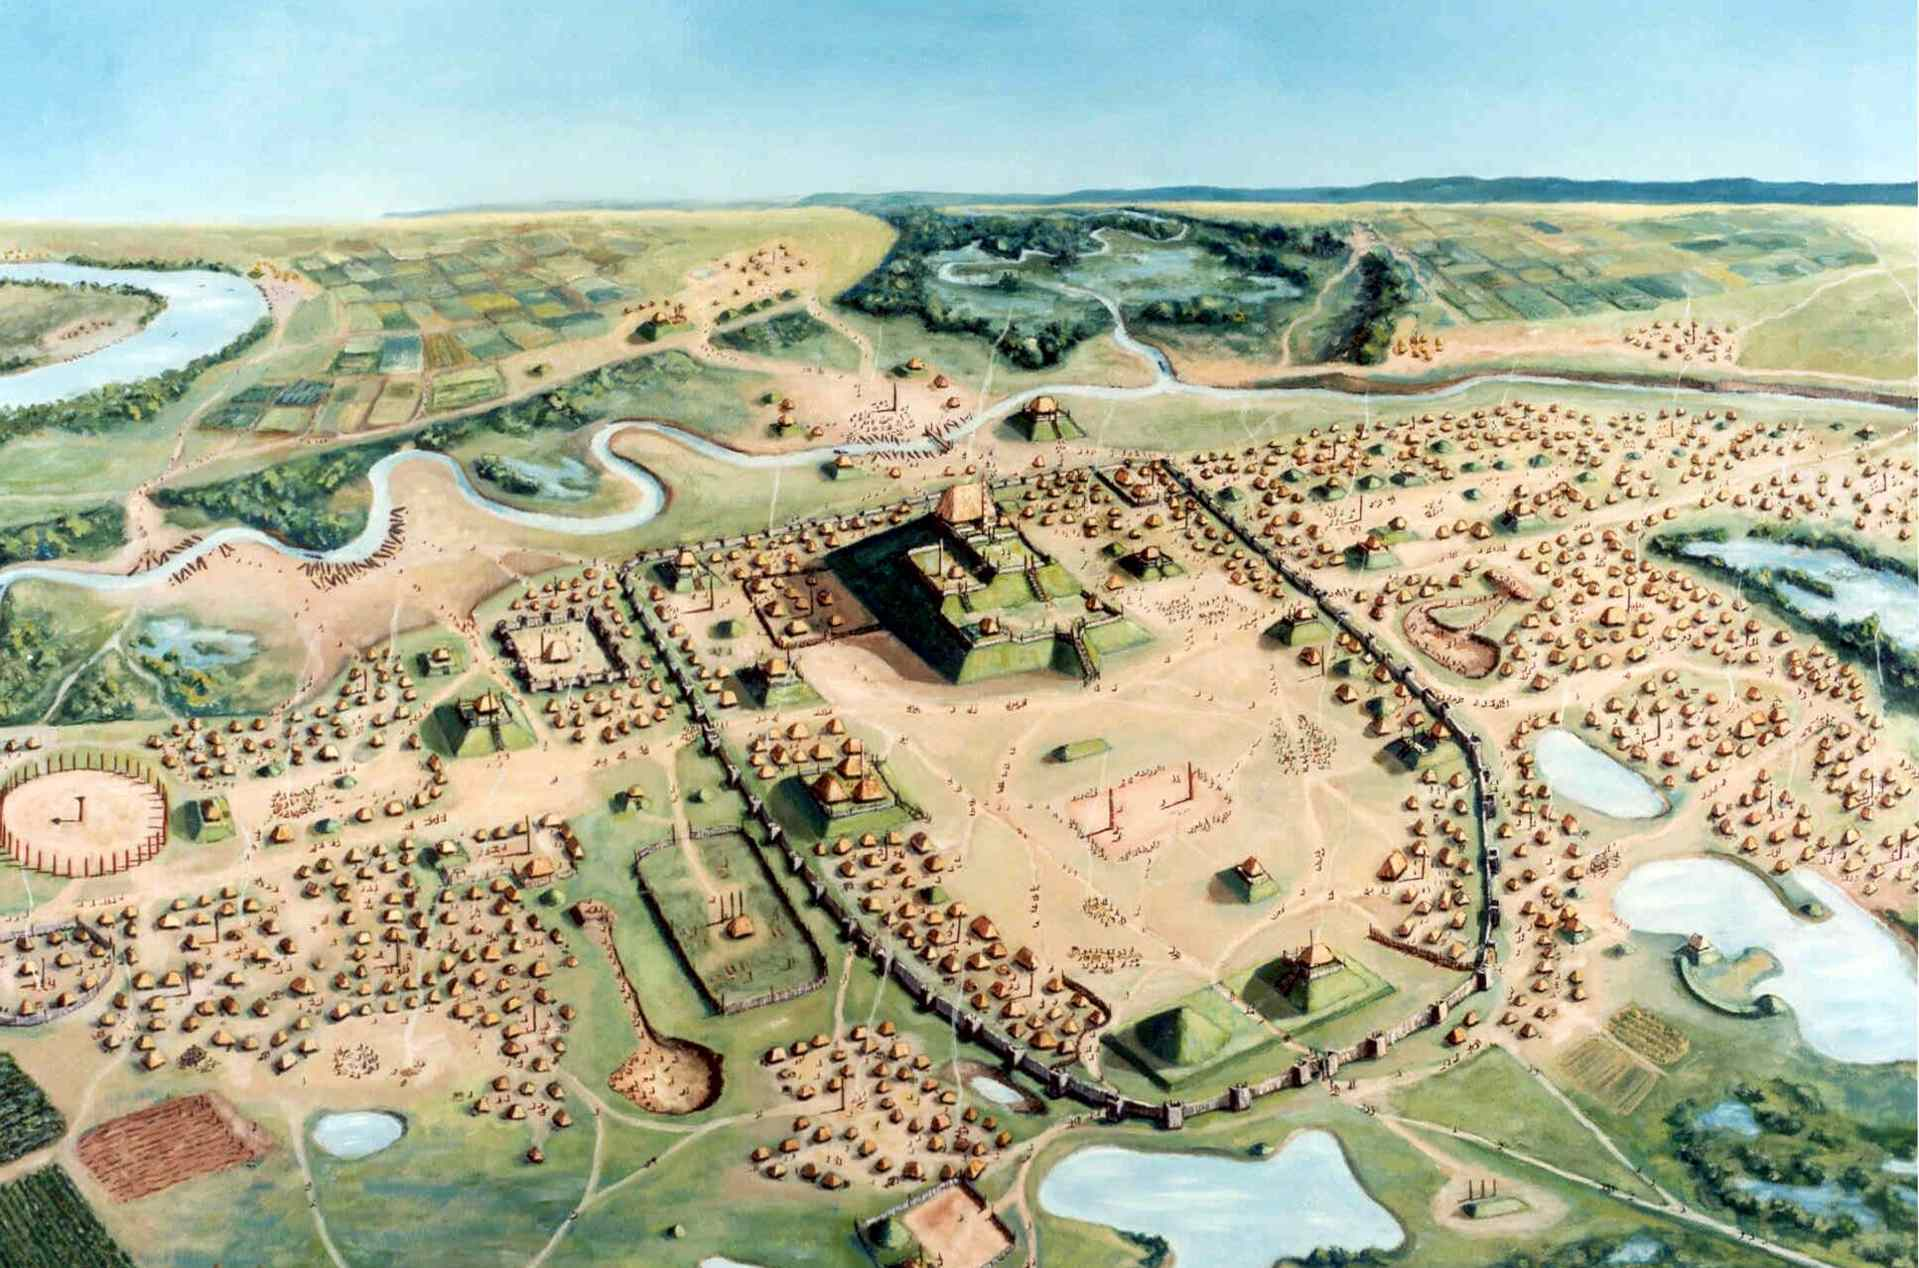 Ancient civilizations, from which only secrets remained 6